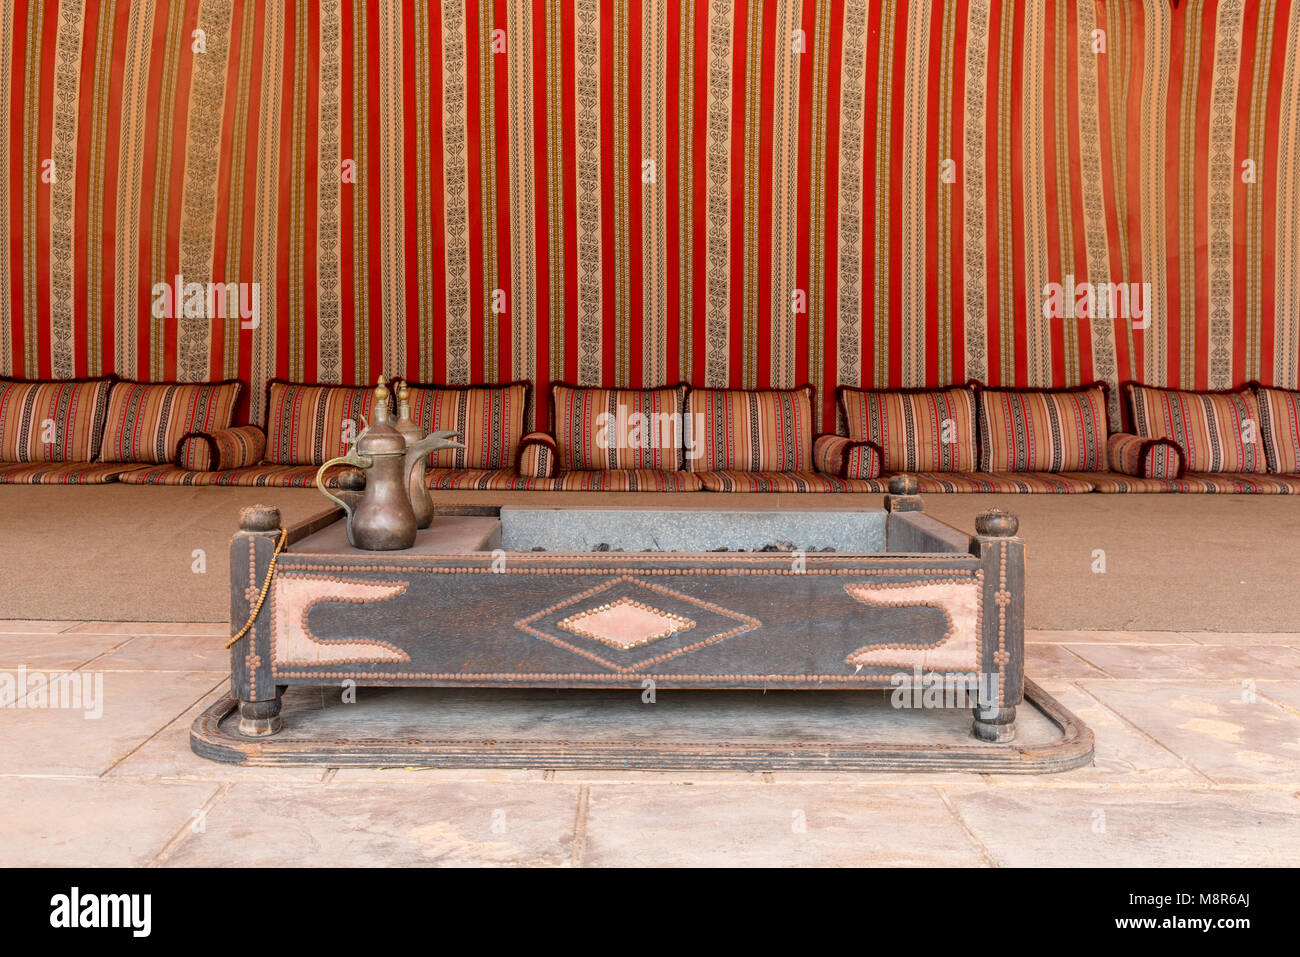 Interior of a large traditional arab tent lined with red patterned woven fabric and the floor covered in cushions - Stock Image